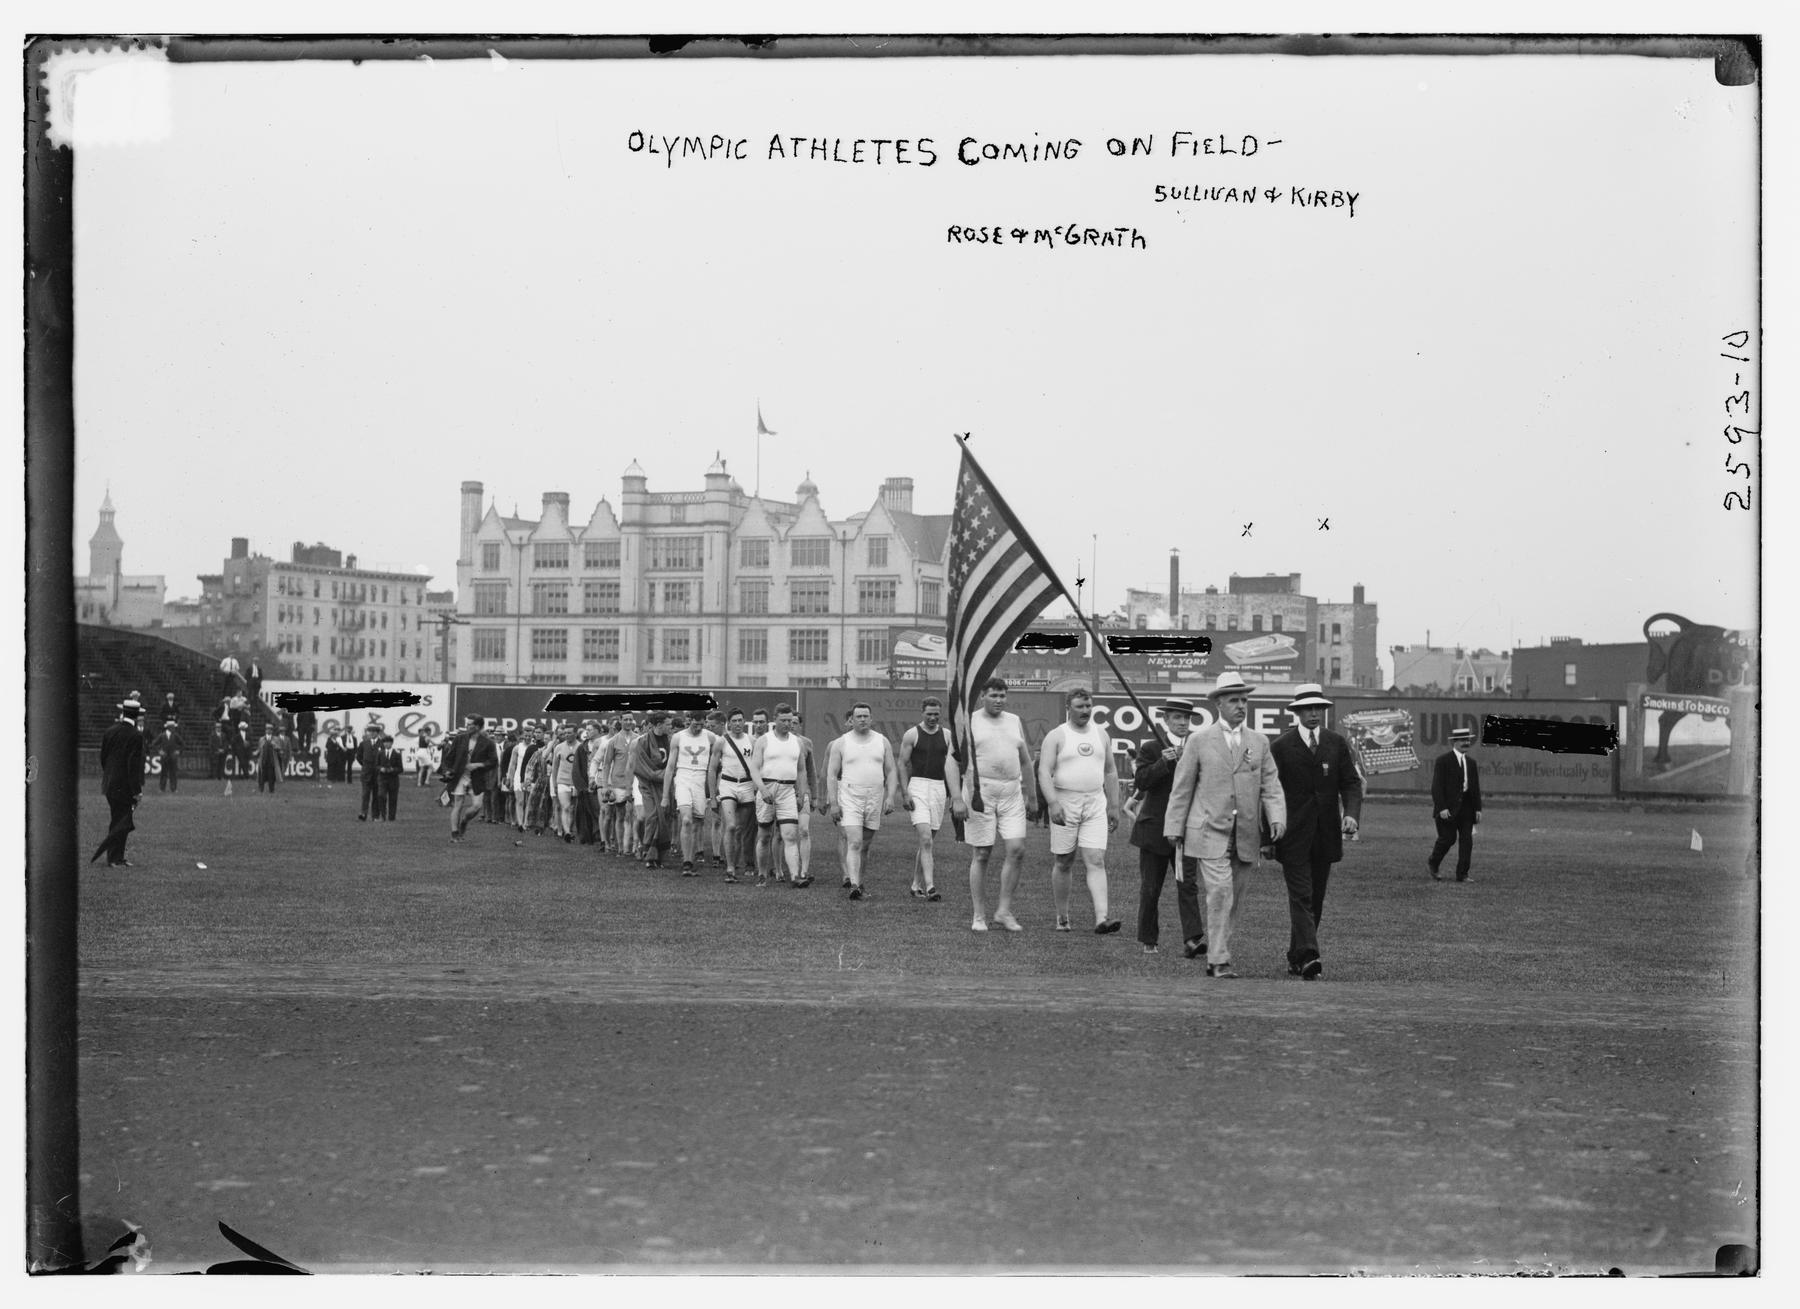 Olympic athletes from the United States coming onto an unidentified field. (Library of Congress)